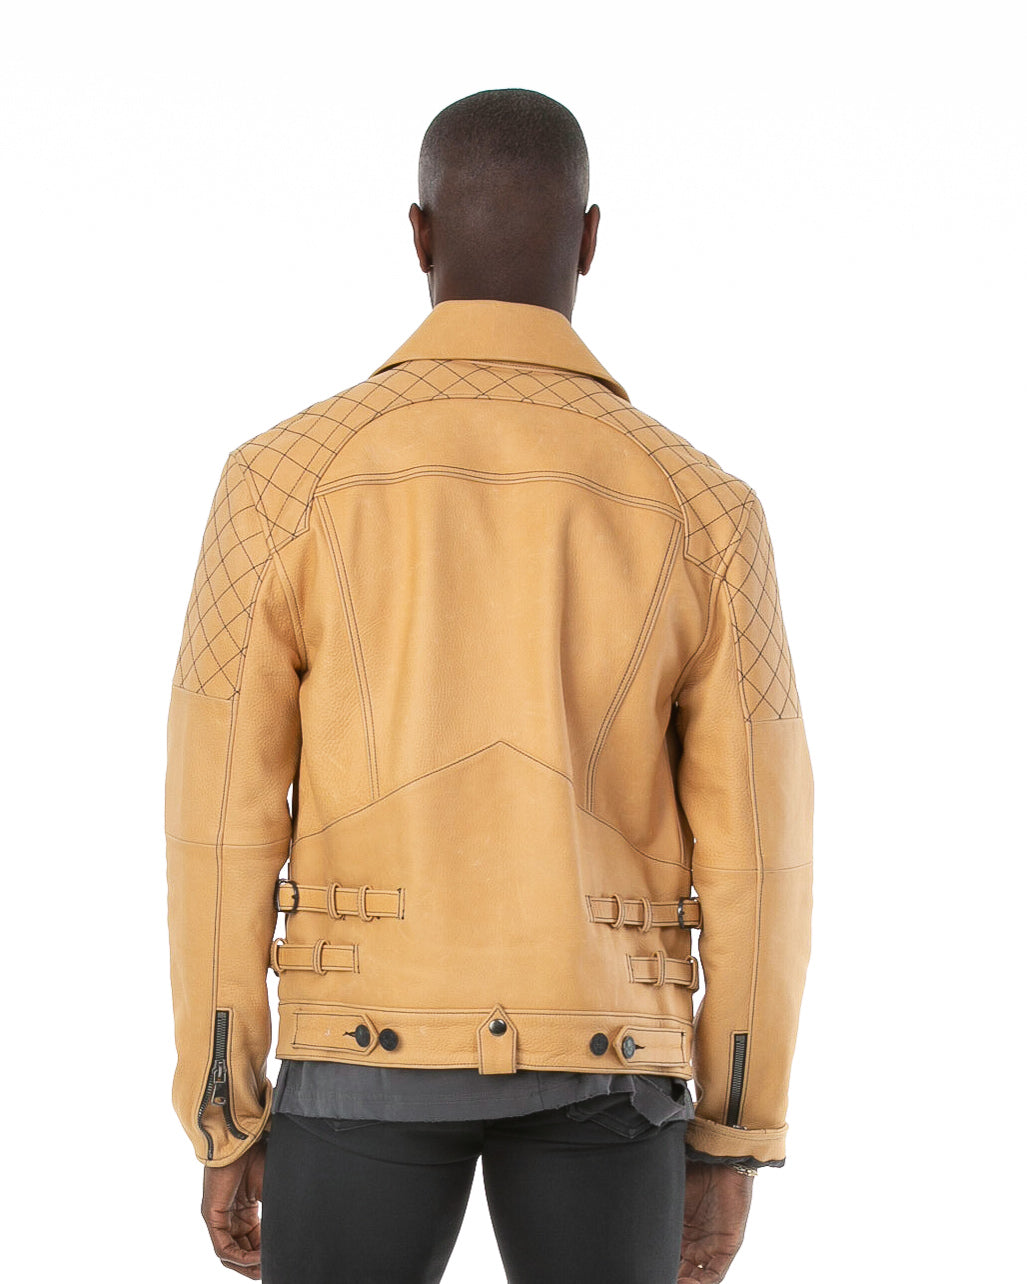 Back of male model wearing The Natural leather jacket